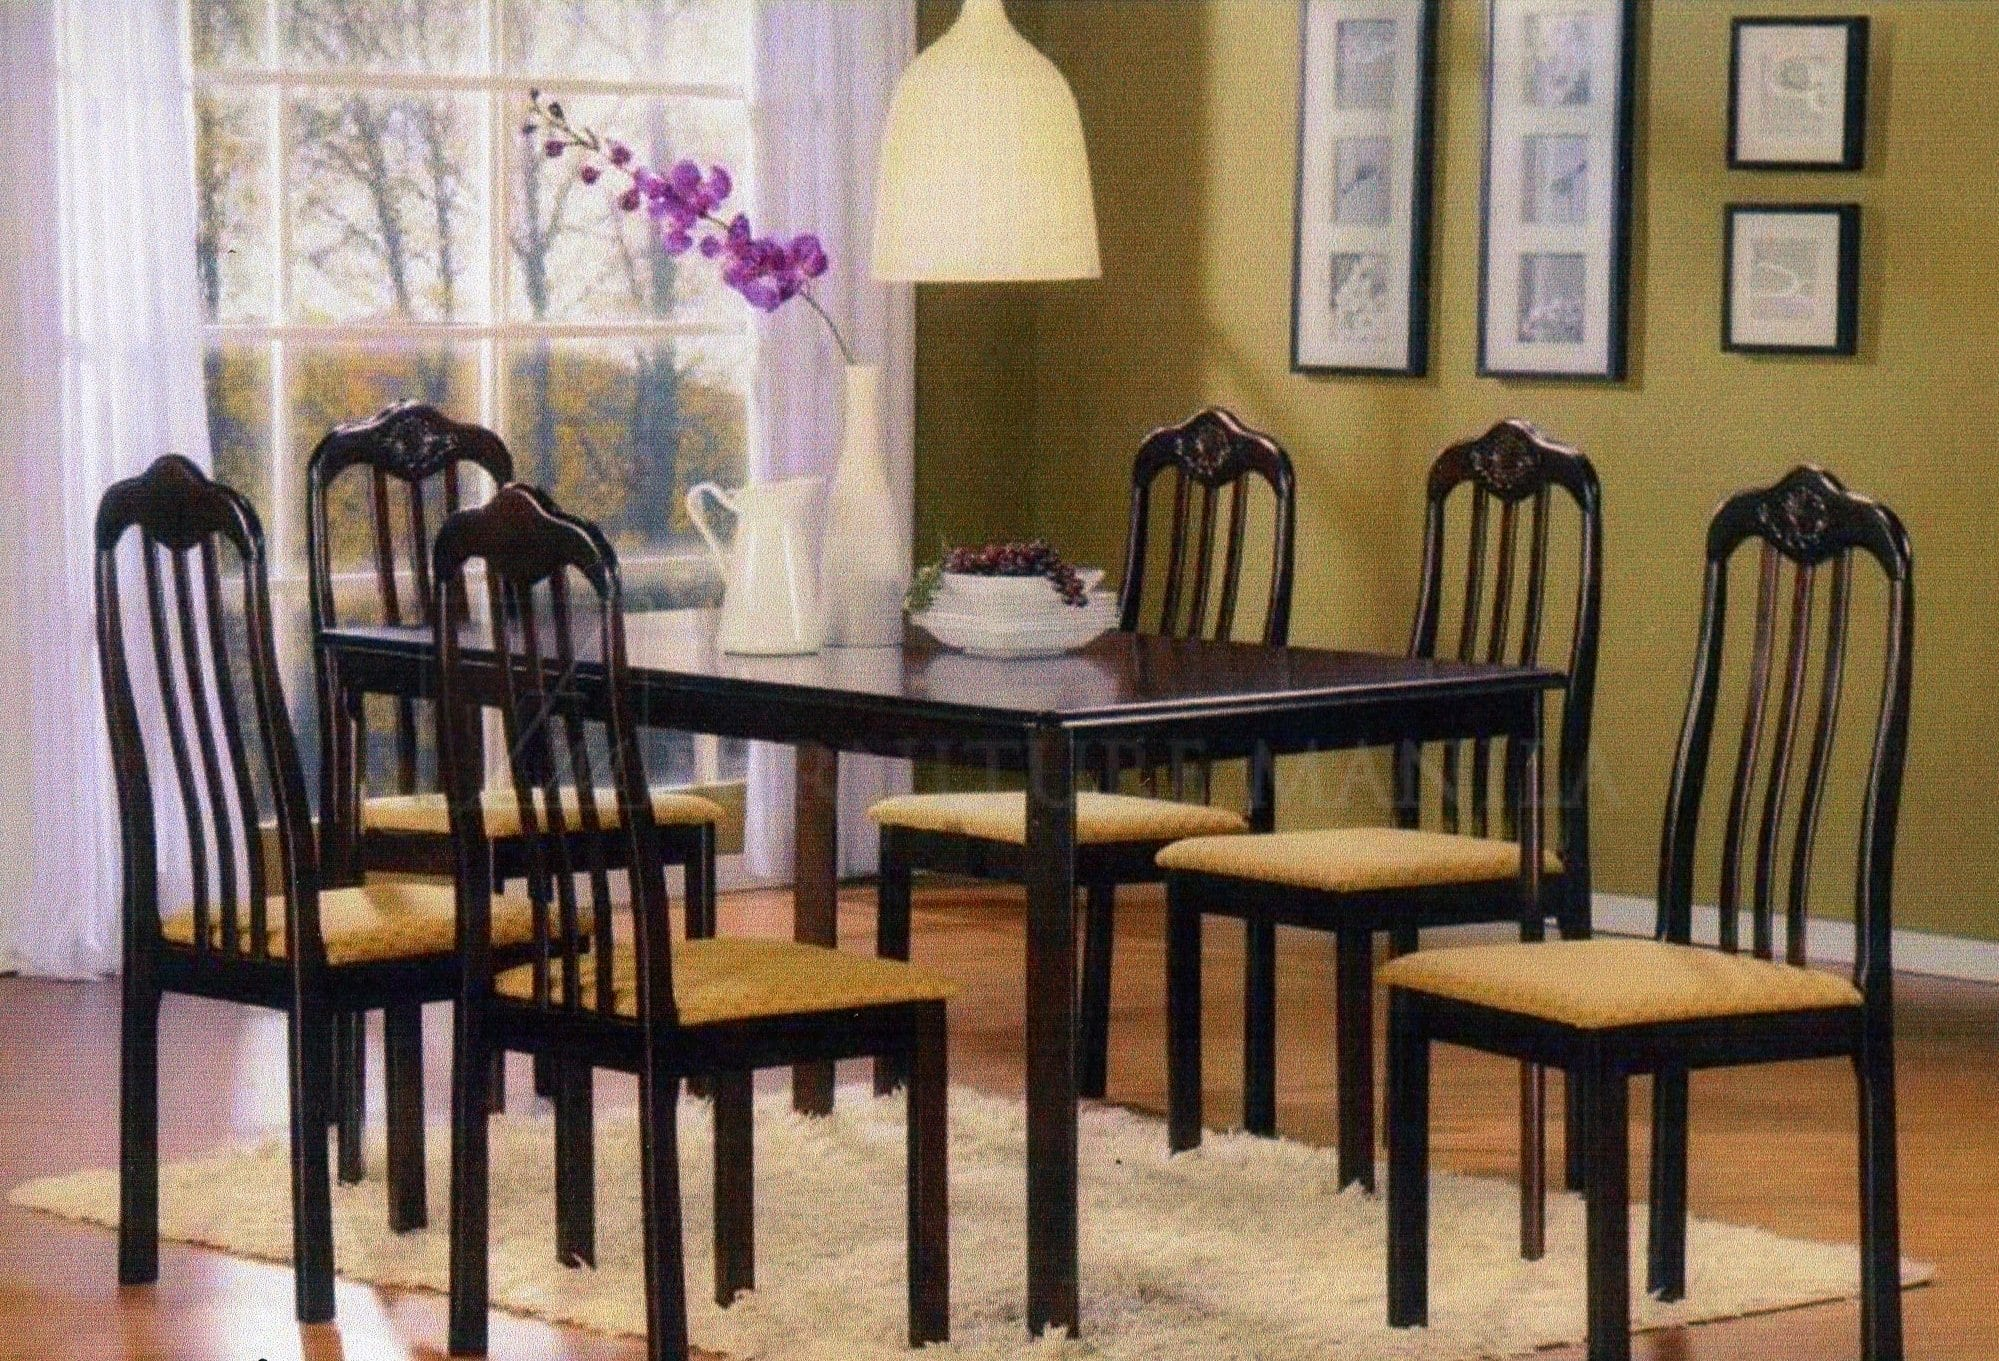 NV3116 8110 DINING SET